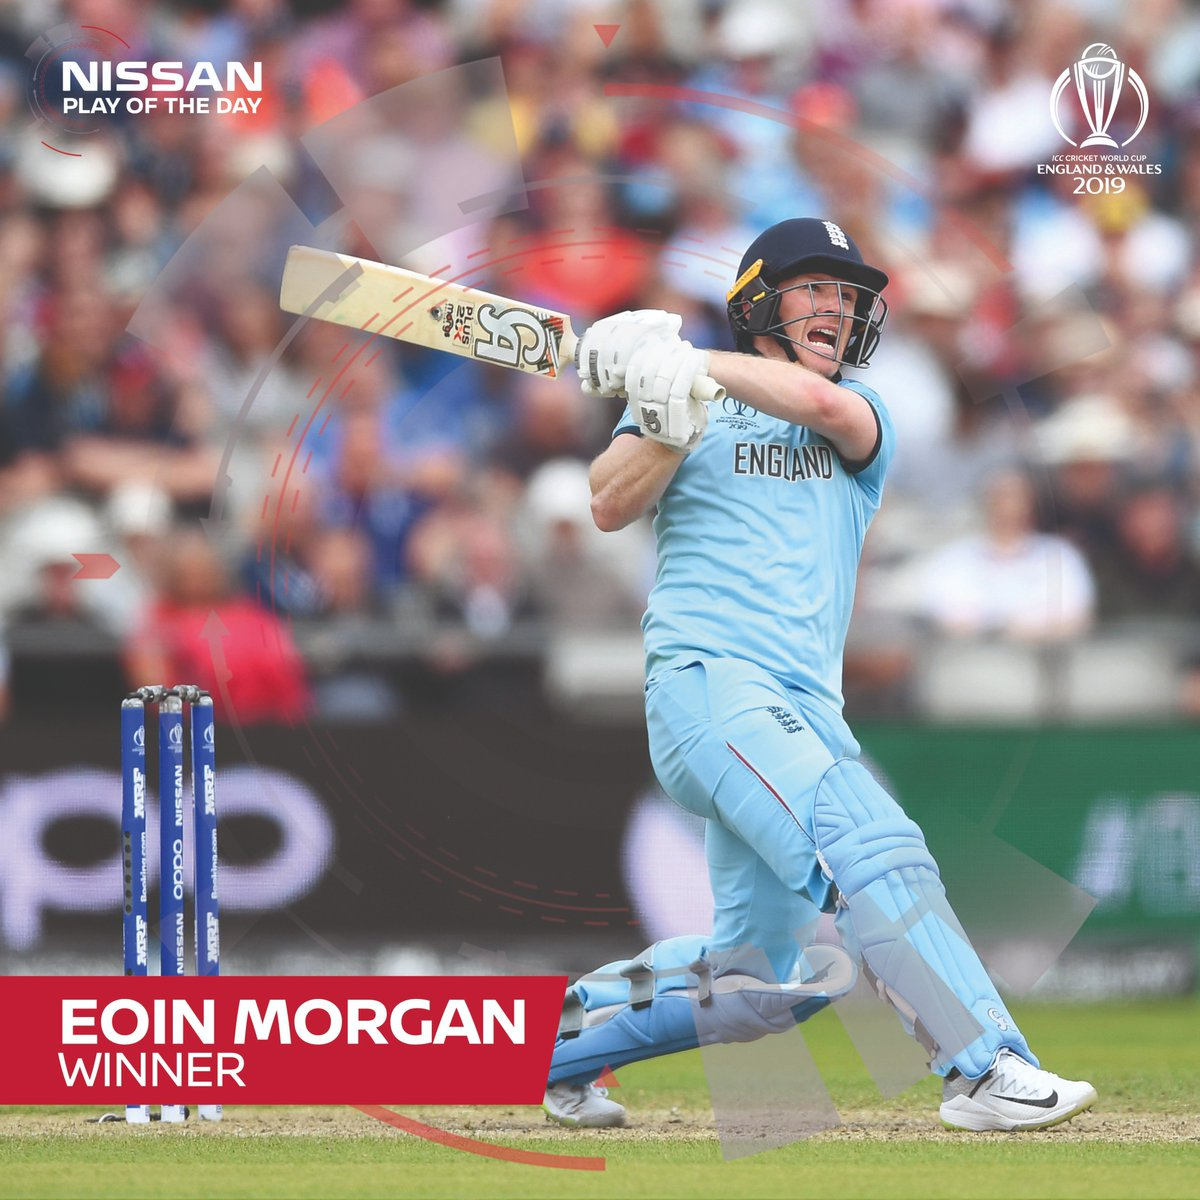 Eoin Morgan's six to bring up his century was voted the Nissan Play of the Day. Was this your favorite from his record breaking 17 sixes? #CWC19 #SweepTheNation